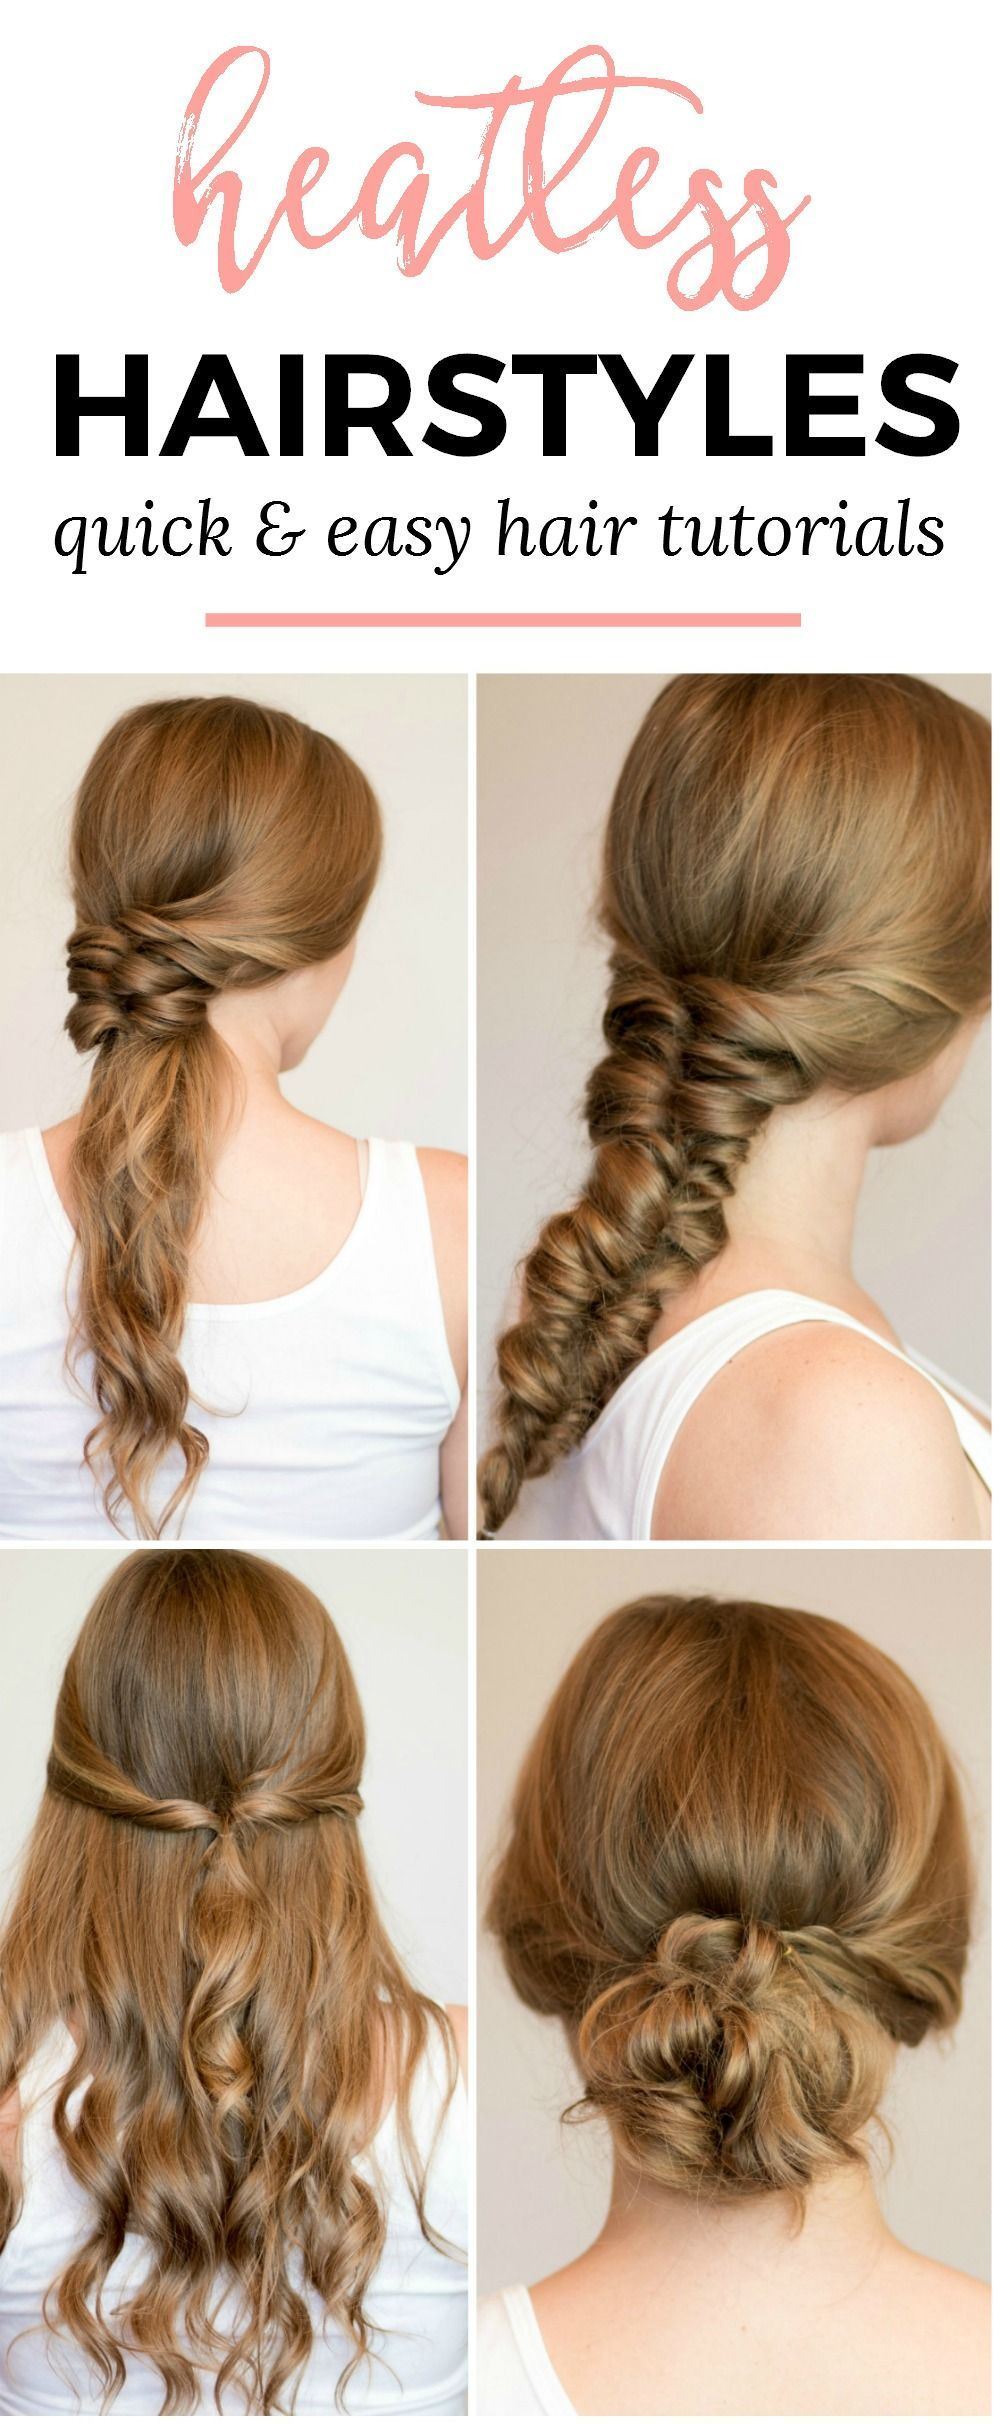 4 easy heatless hairstyles for long hair that don't require